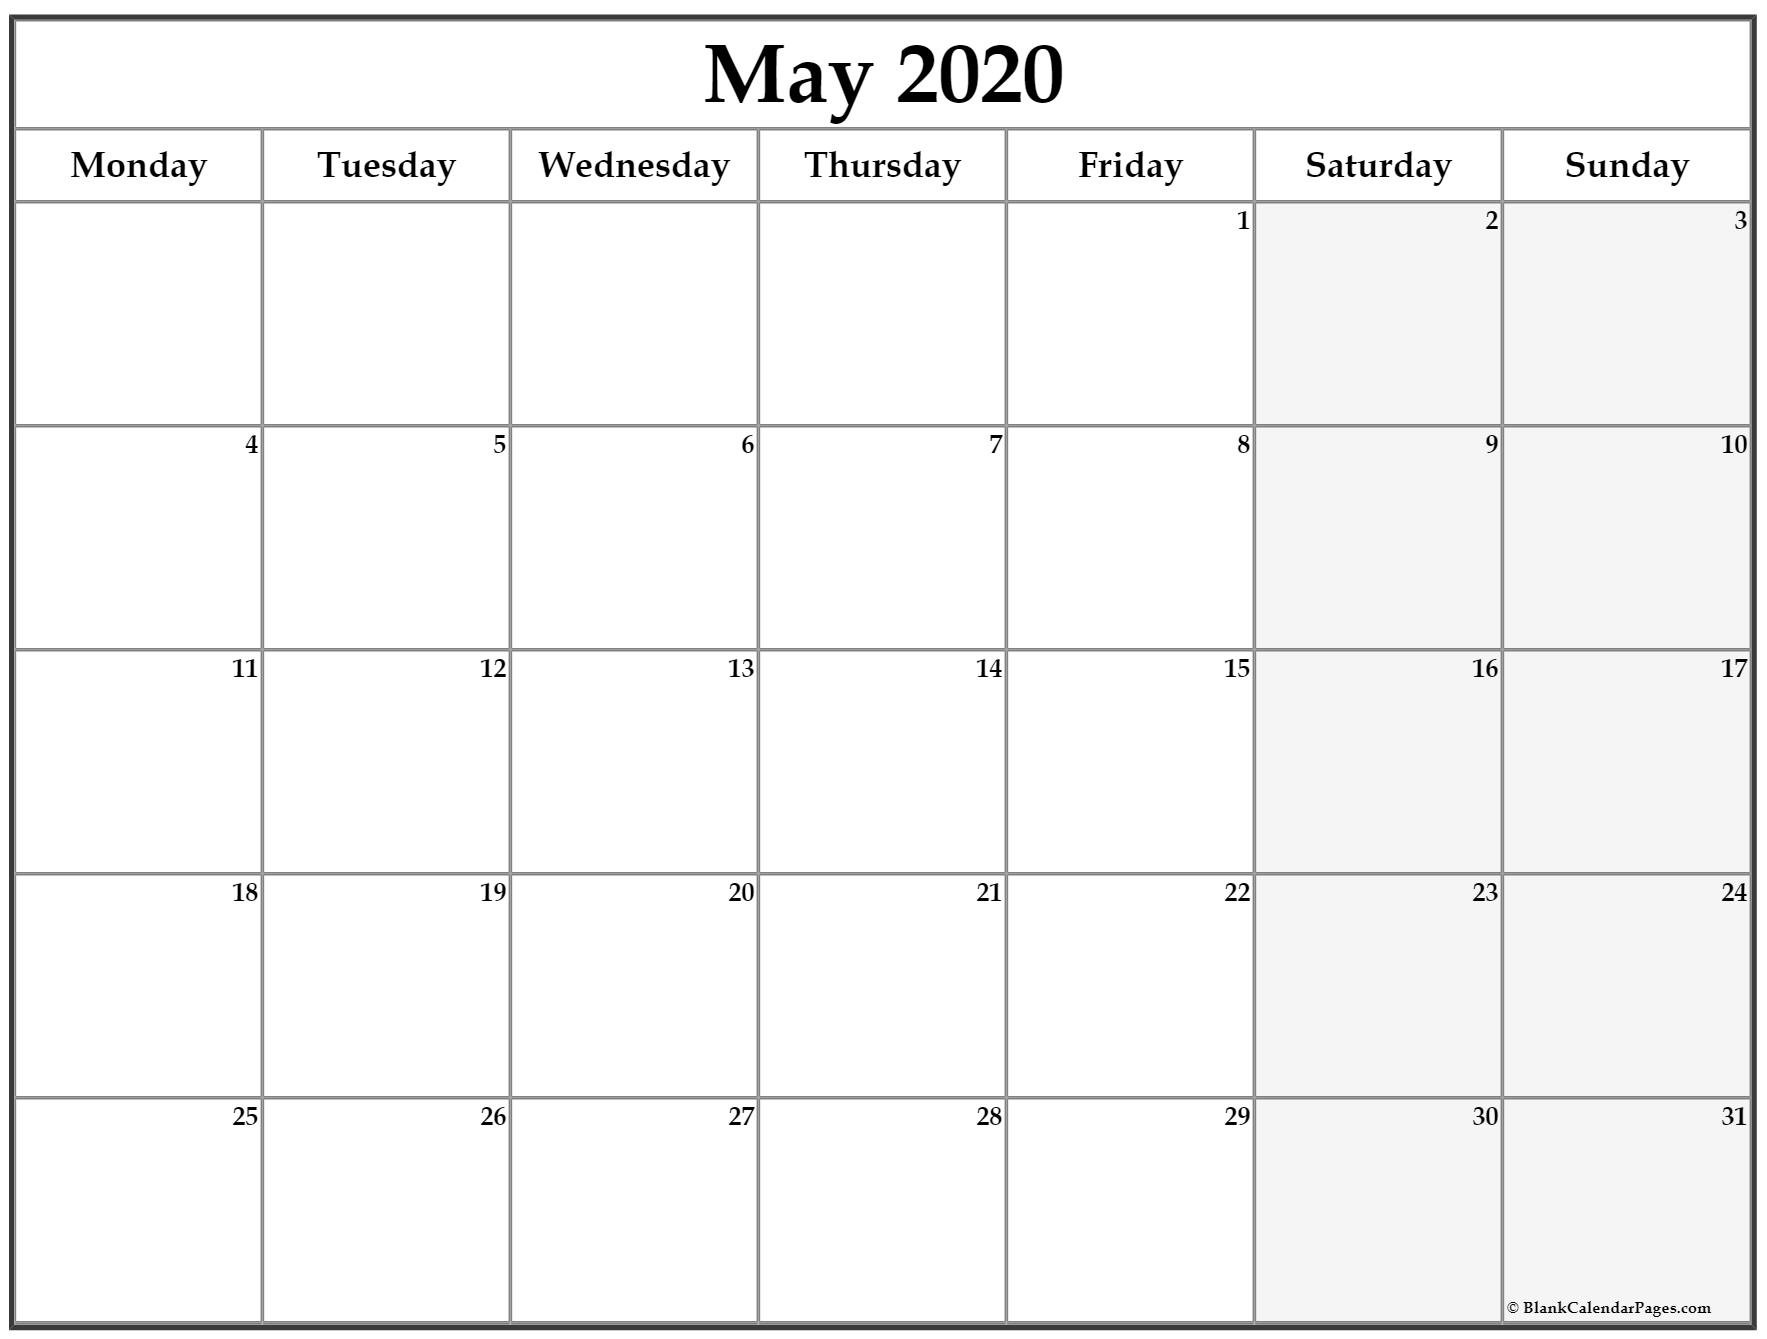 May 2020 Monday Calendar | Monday To Sunday Monday Thru Friday Calendsr